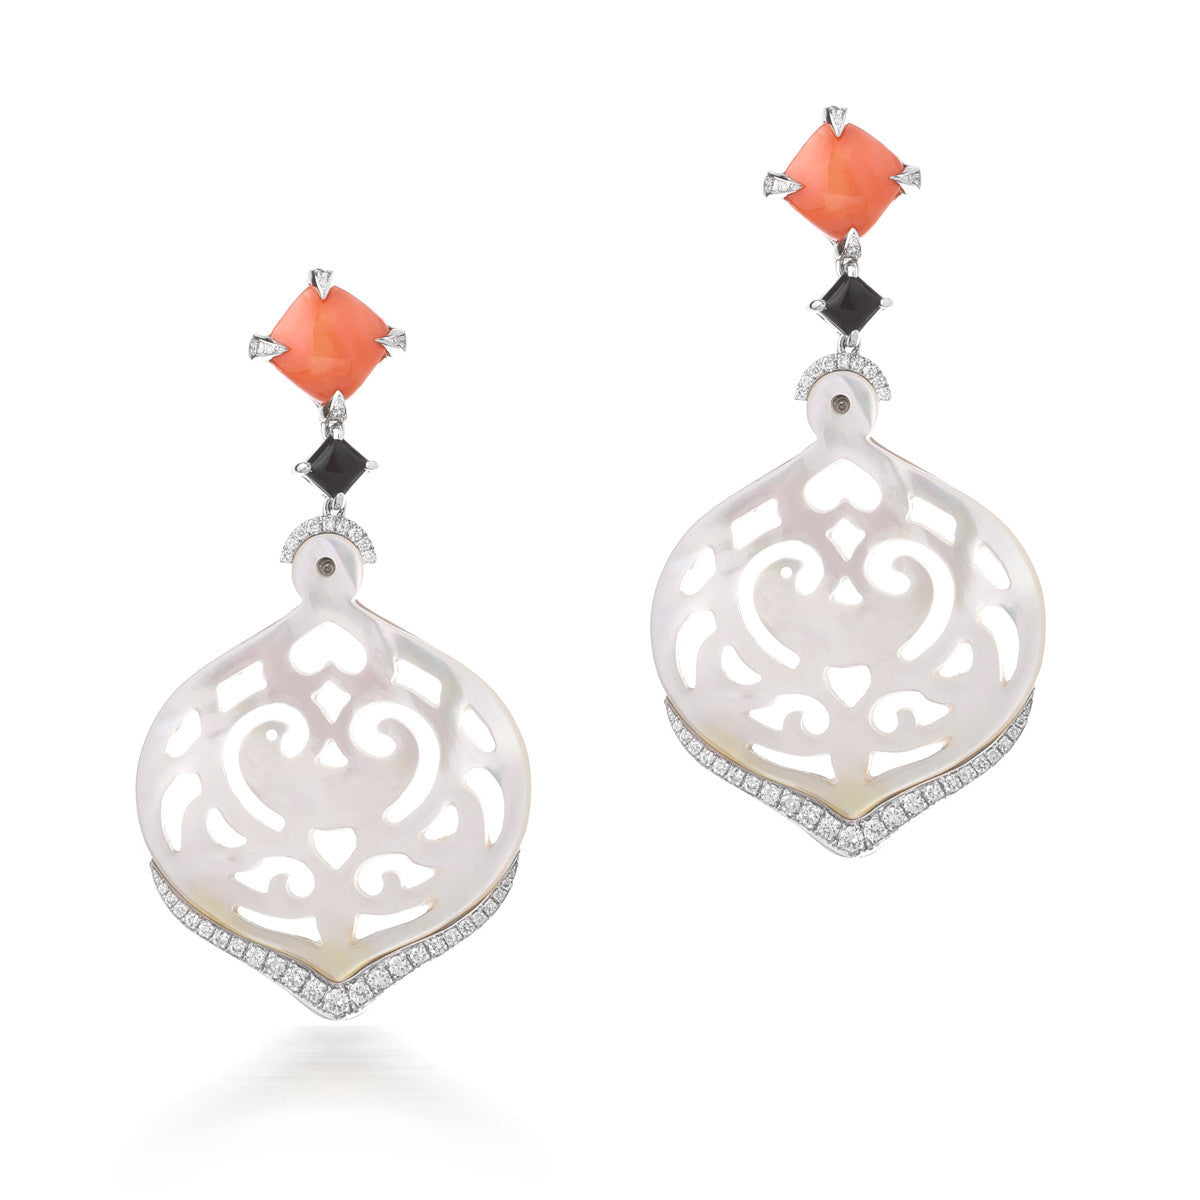 Carved Mother of Pearl and Coral Earrings